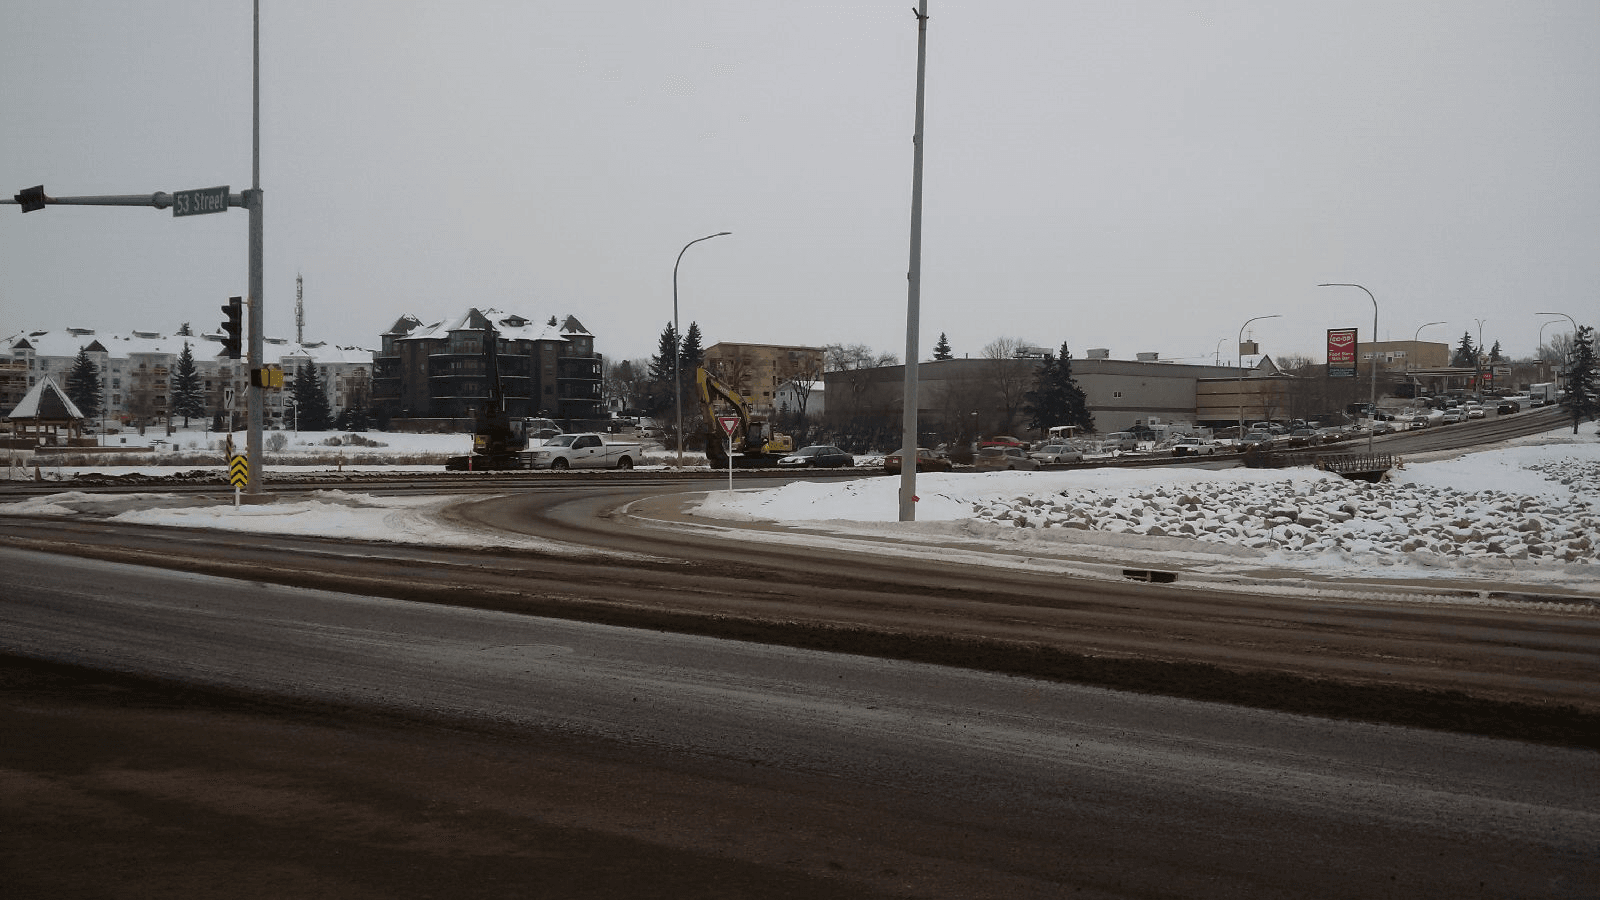 48th Ave eastbound traffic restrictions removed